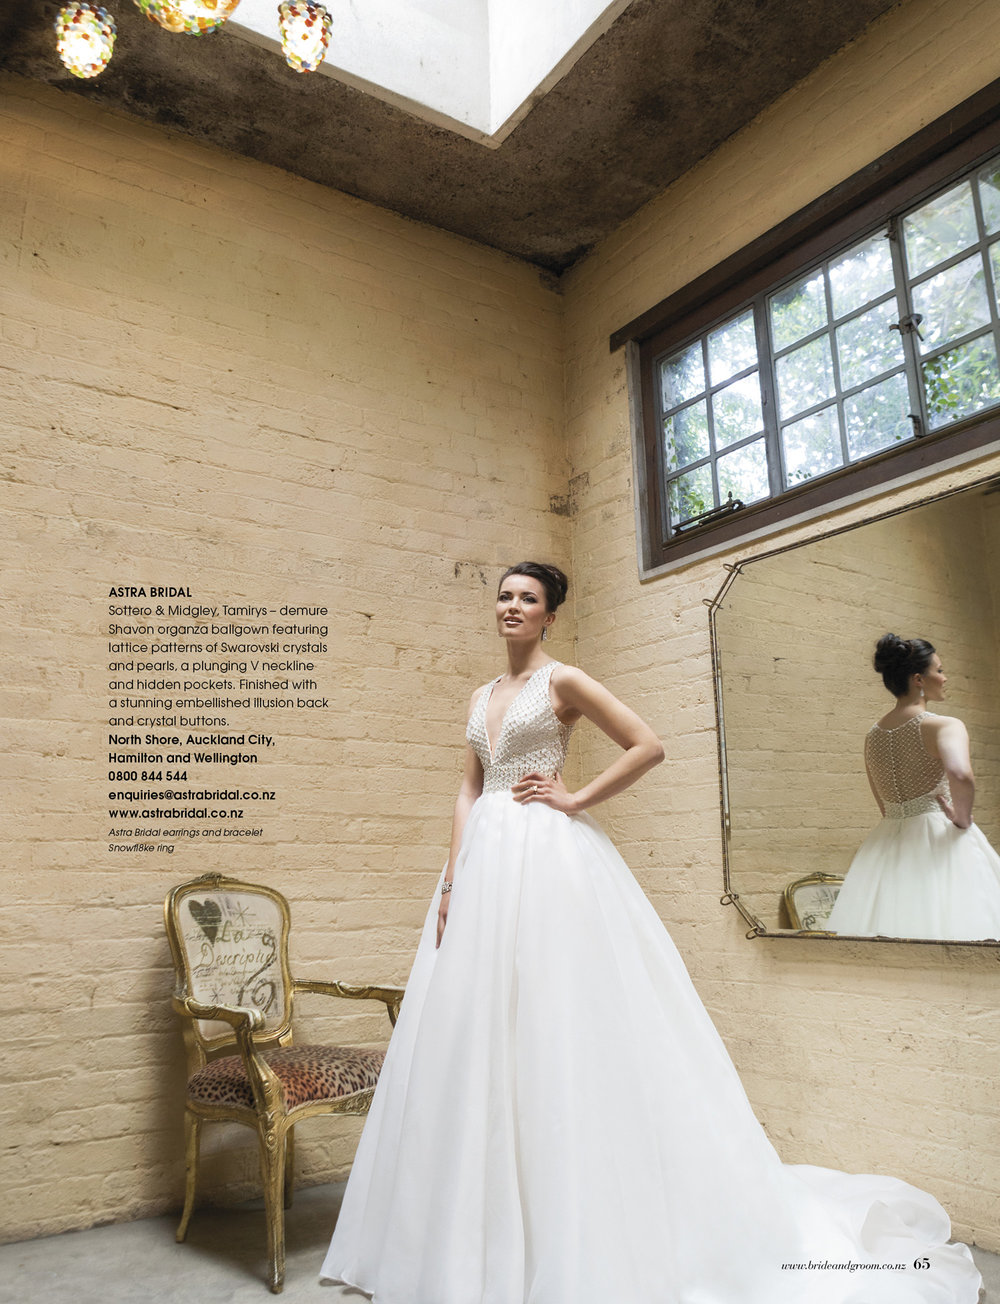 Tamirys from Sottero & Midgley | Issue 91 Bride and Groom Magazine | Available from Astra Bridal |